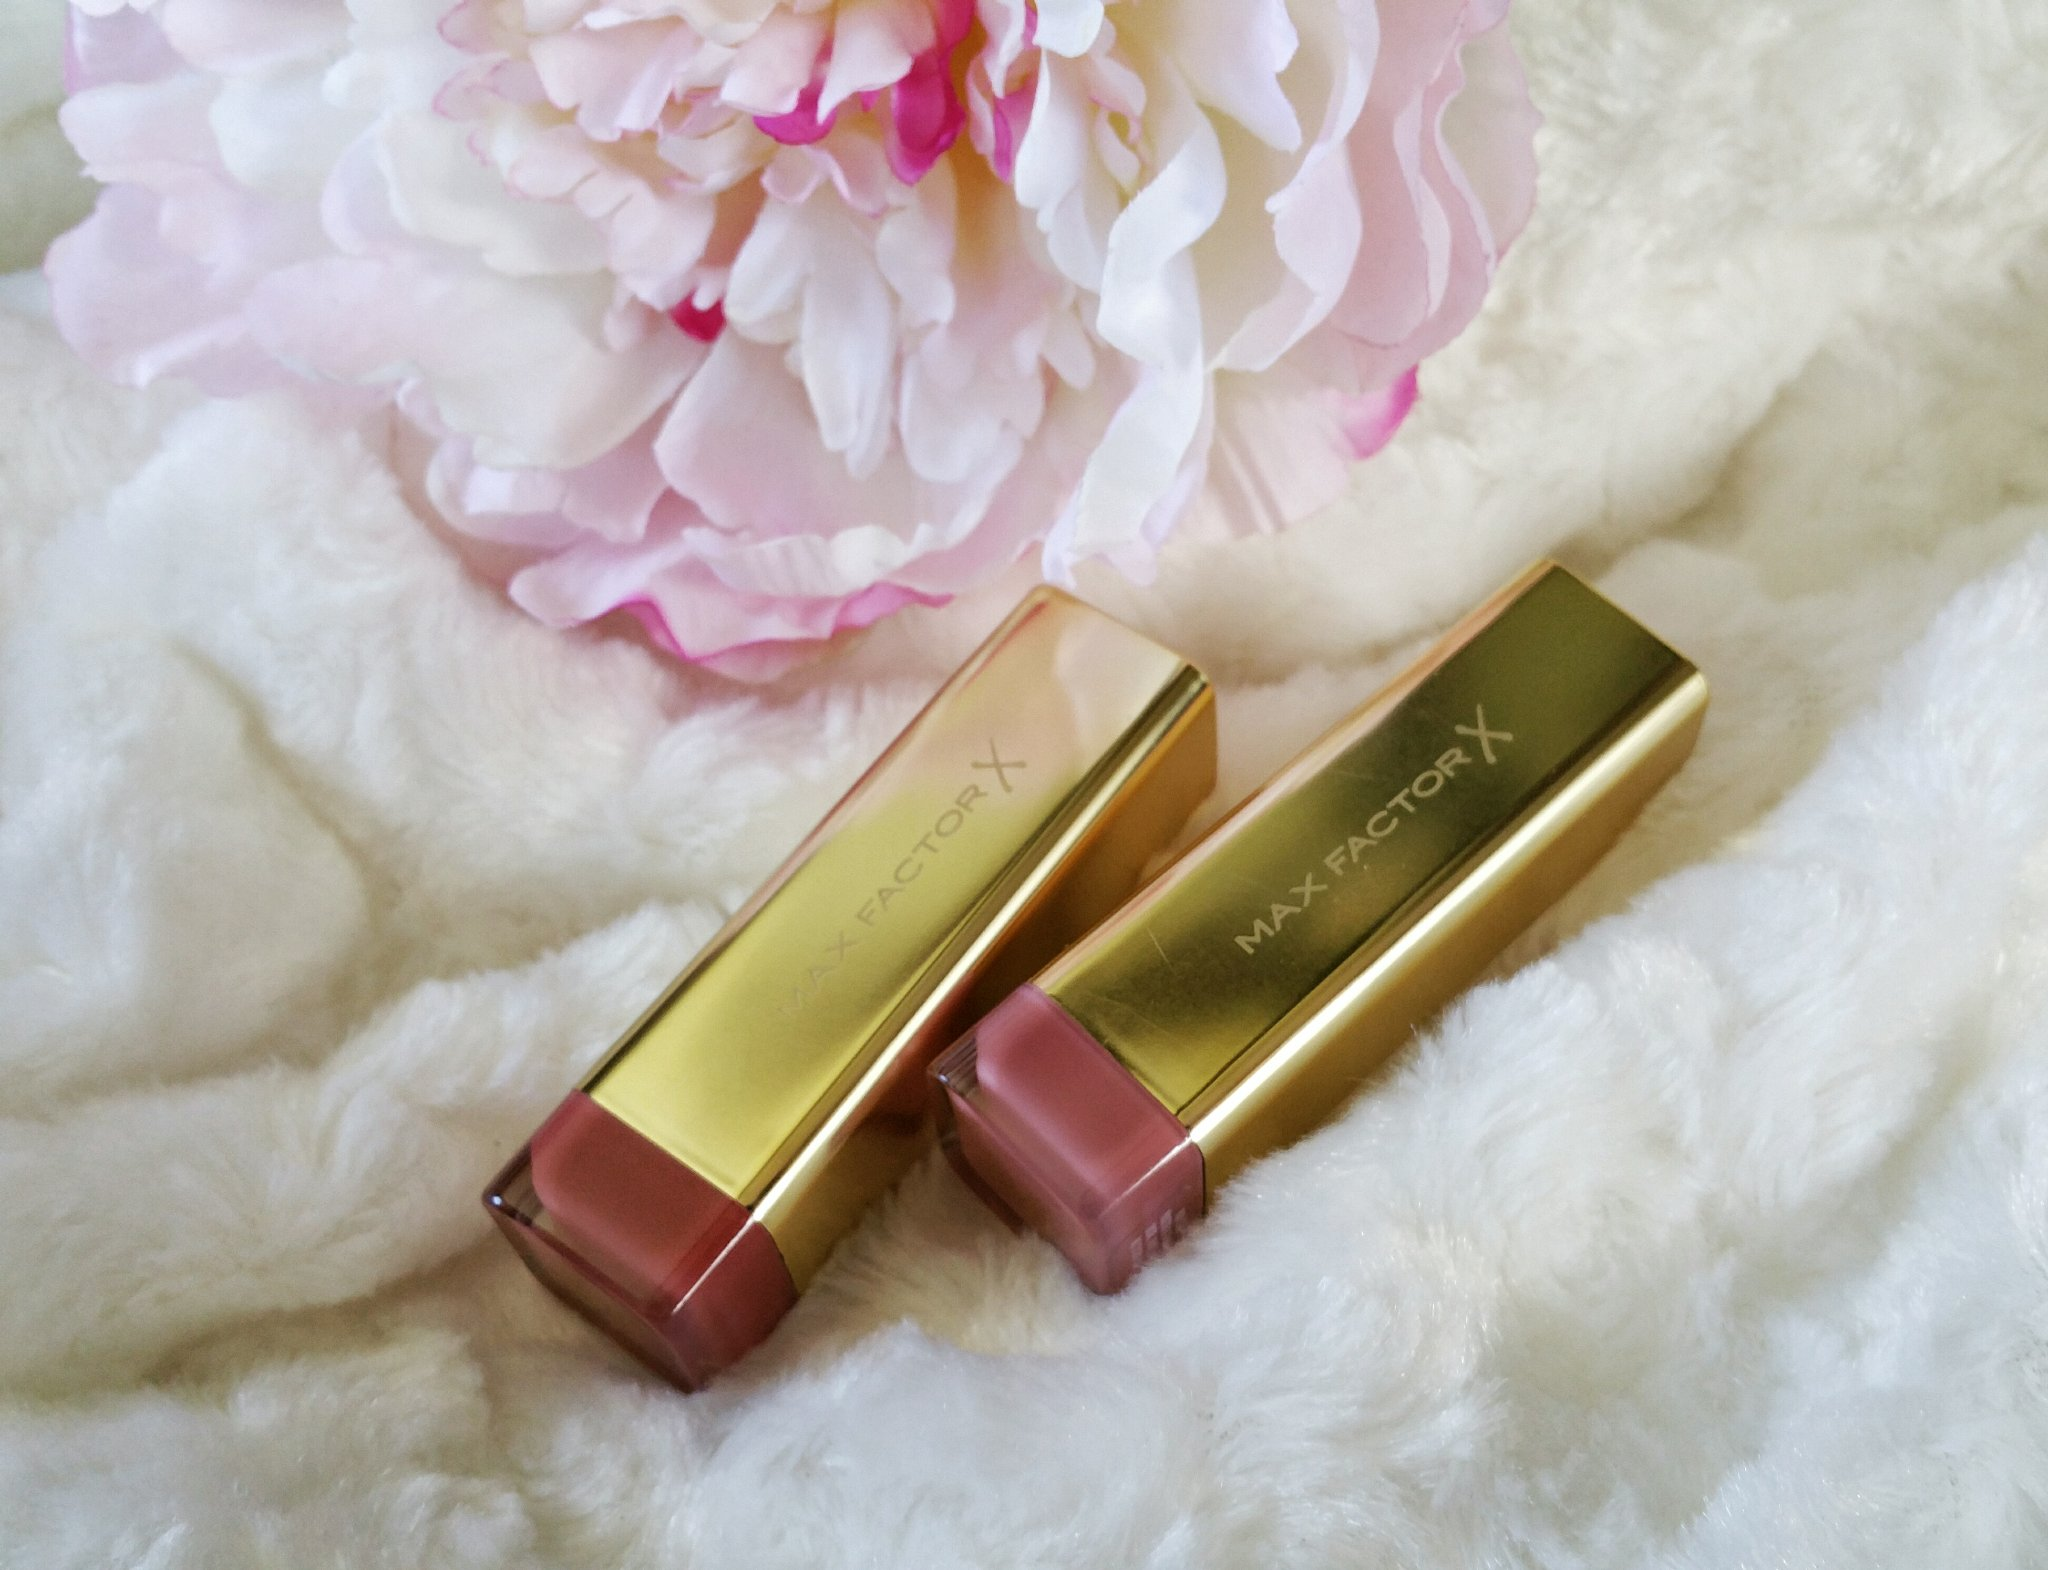 Max Factor, cosmetics, cult favorites, makeup artist, makeup, beauty, swatches, review, product review, beauty review, swatches,